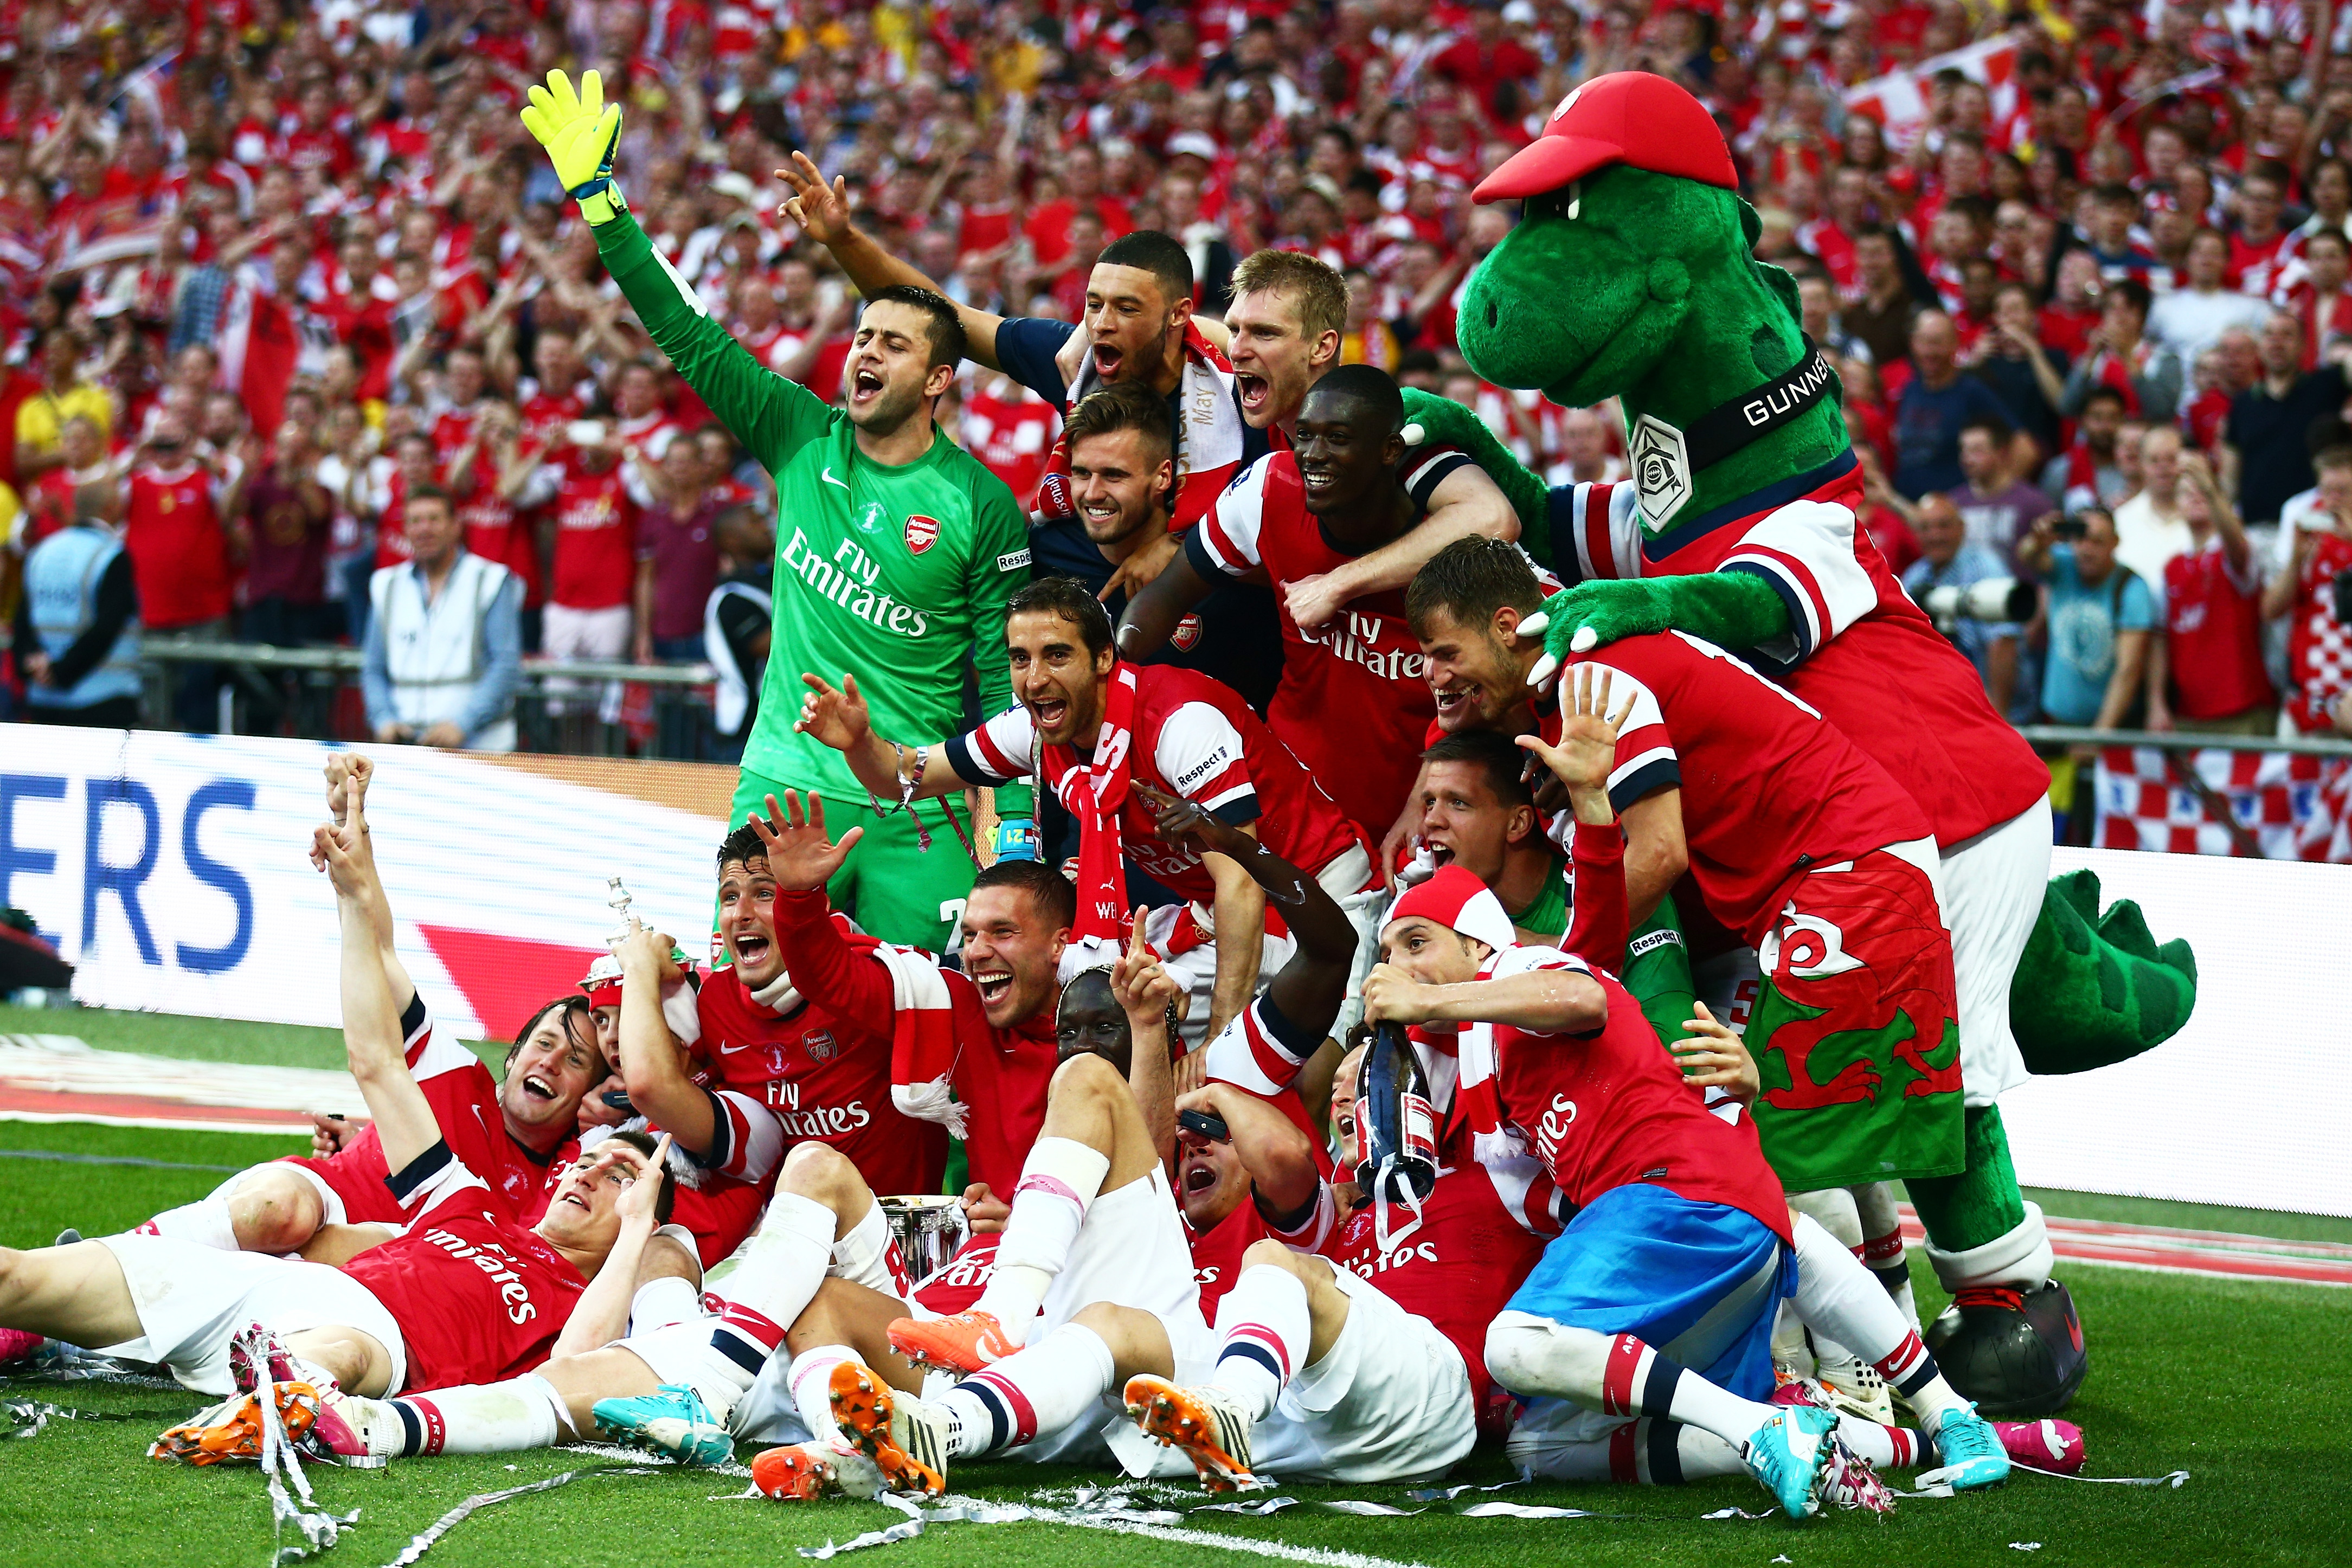 Arsenal players celebrate victory with mascot Gunnersauraus Rex after the FA Cup with Budweiser Final match between Arsenal and Hull City at Wembley Stadium on May 17, 2014 in London.